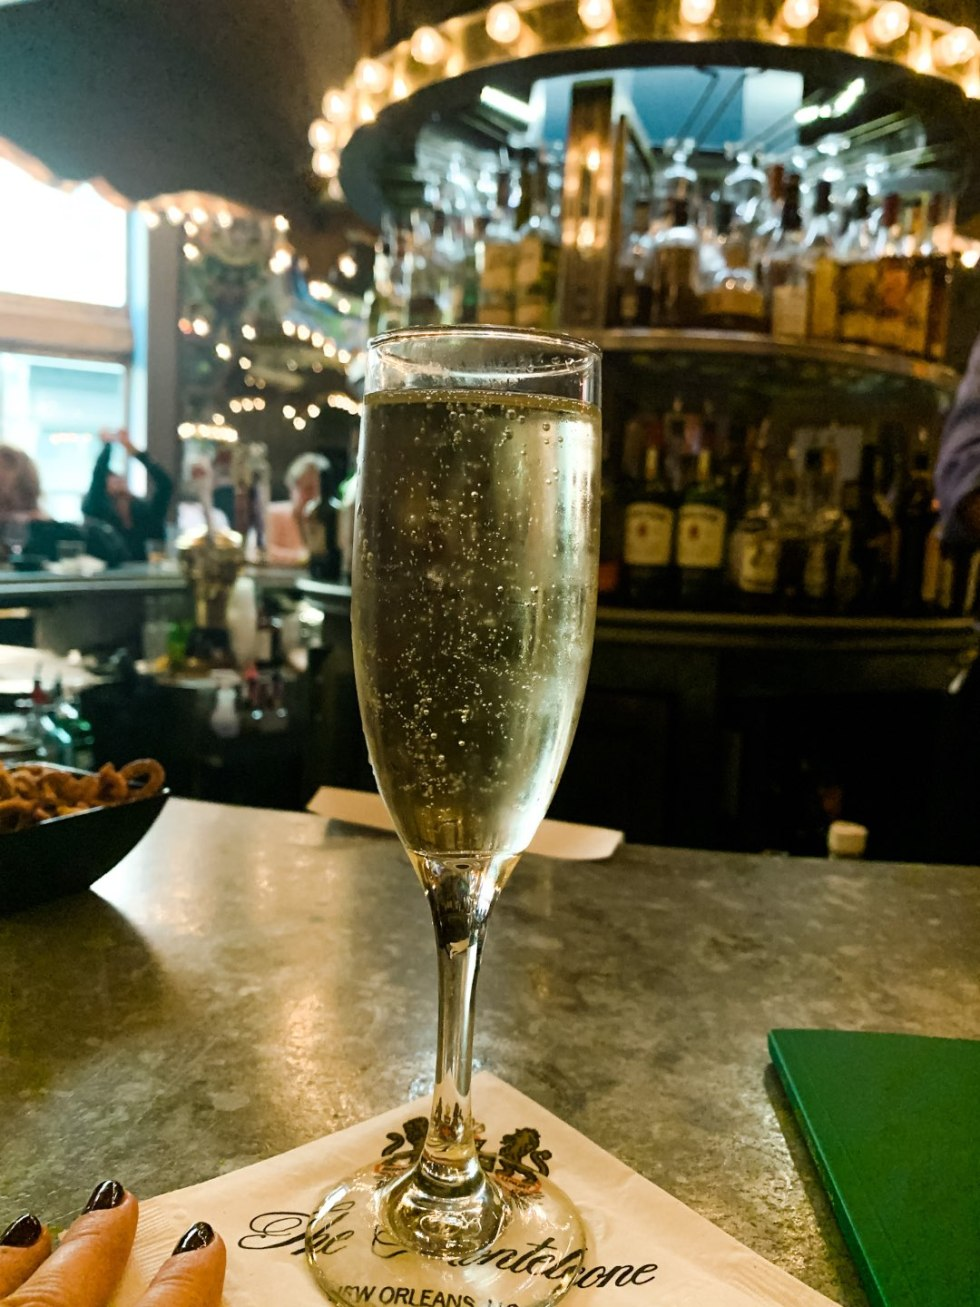 A Girls Trip to New Orleans: All the Info you Need to Prepare! - I'm Fixin' To - @mbg0112 | Girls Trip to New Orleans by popular US travel blog, I'm Fixin To: image of the Carousel bar.